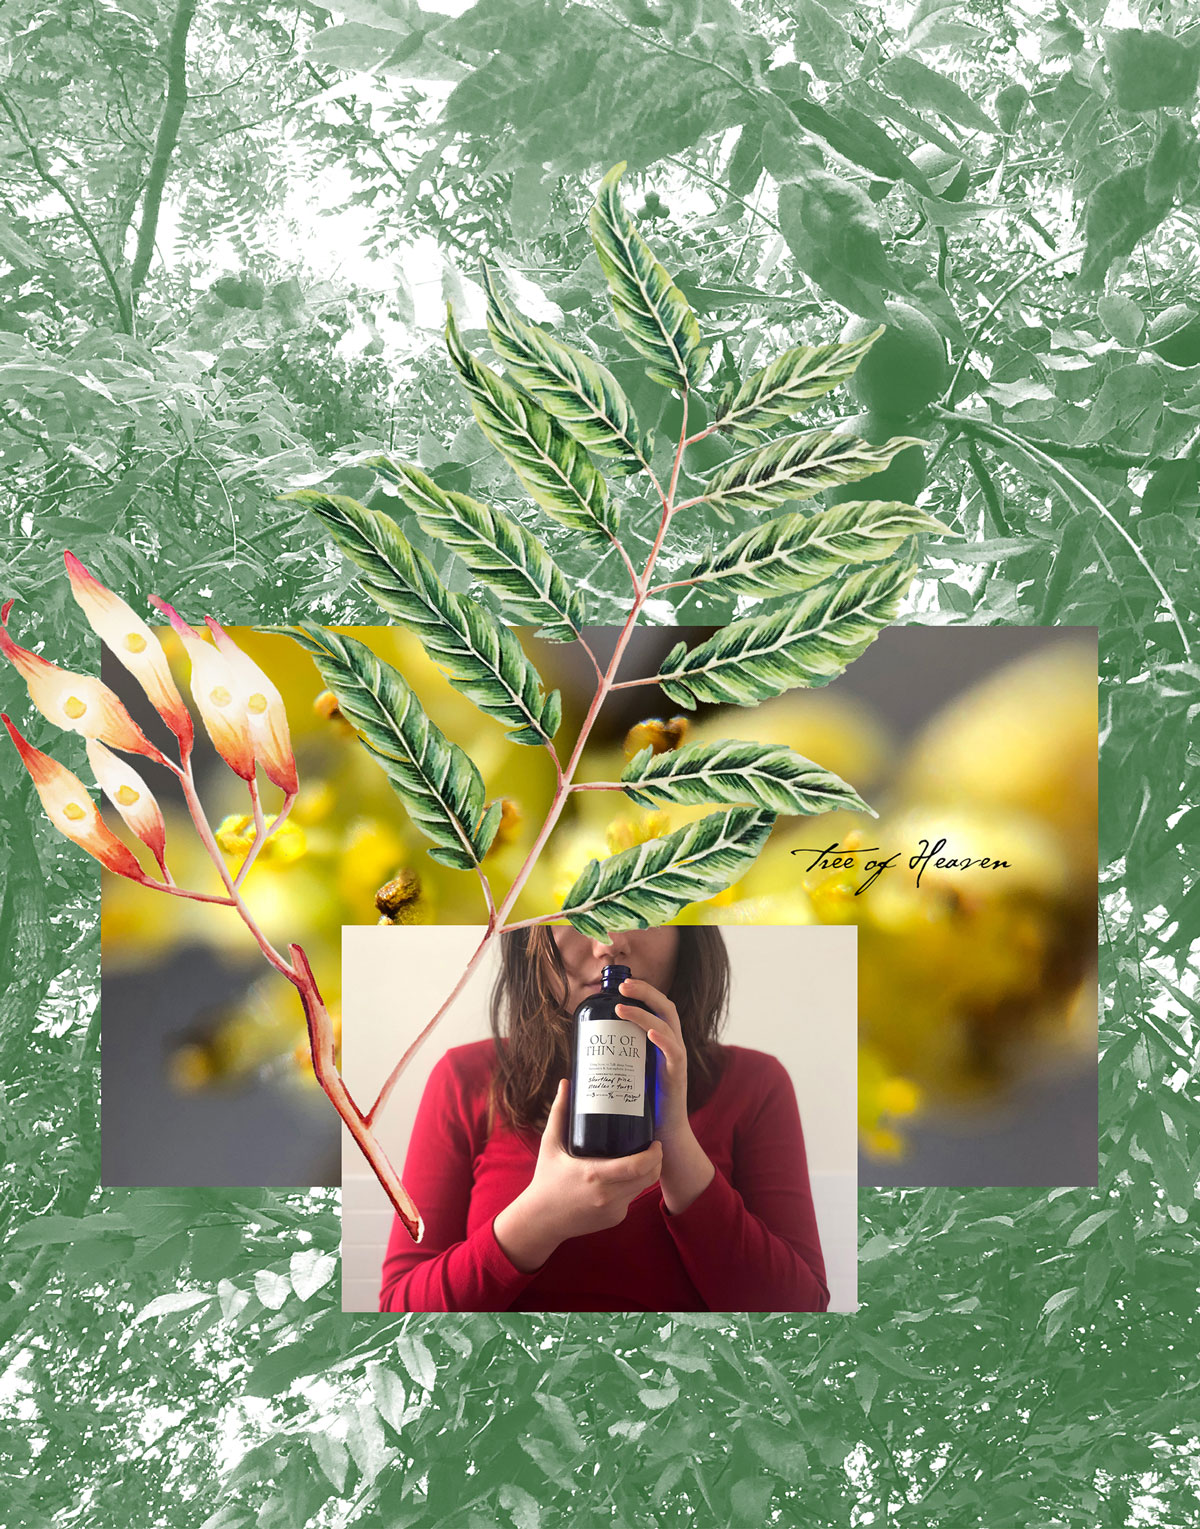 Collage of someone smelling a bottle with background of foliage images